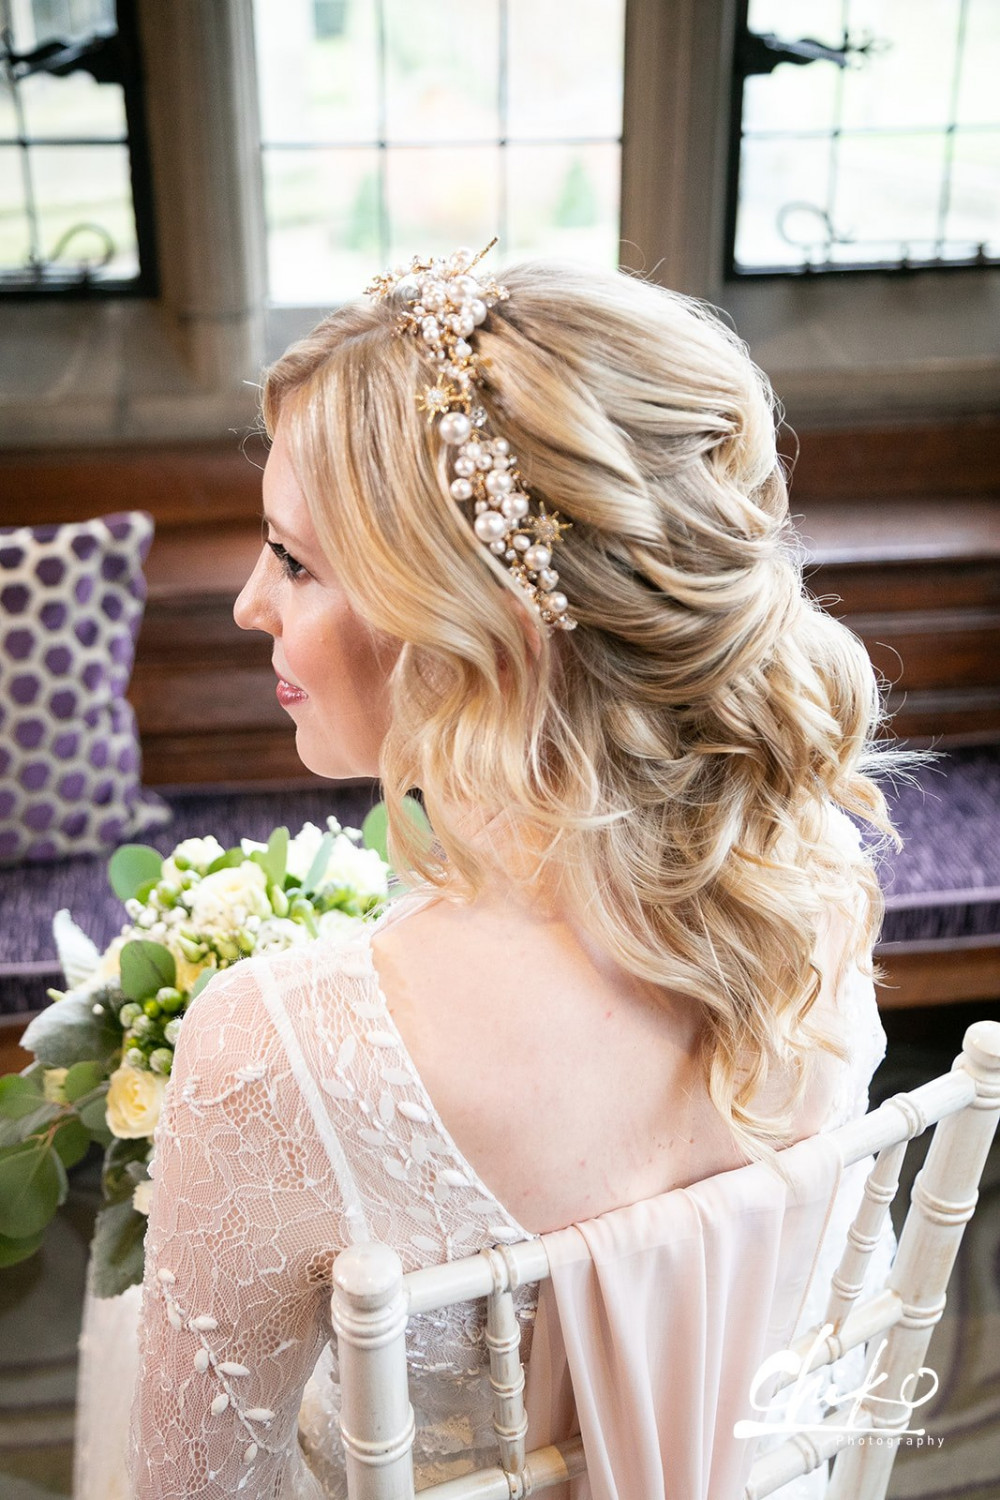 A perfect combo of up and down suitable for brides who prefer their hair down, but would like the security of something a bit up as well. - Make Me Bridal Artist: Laura Anne Hair & Makeup Designer. Photography by: Chiko Photography. #boho #halfuphair #modernbride #blondebride